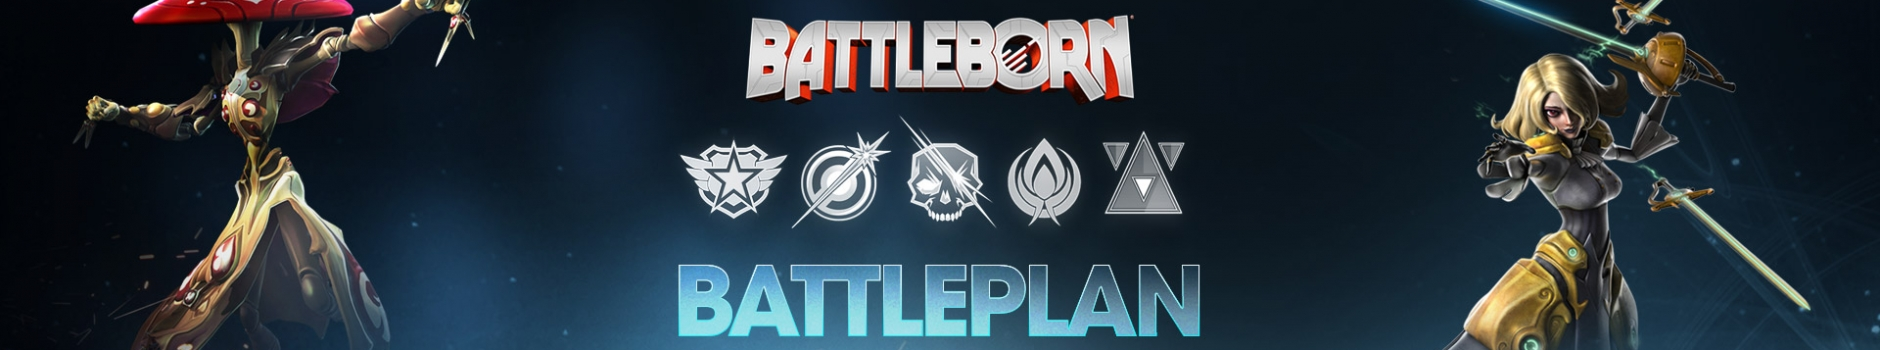 Battleplan 48: Youtube Communities, Lore, and Anniversaries